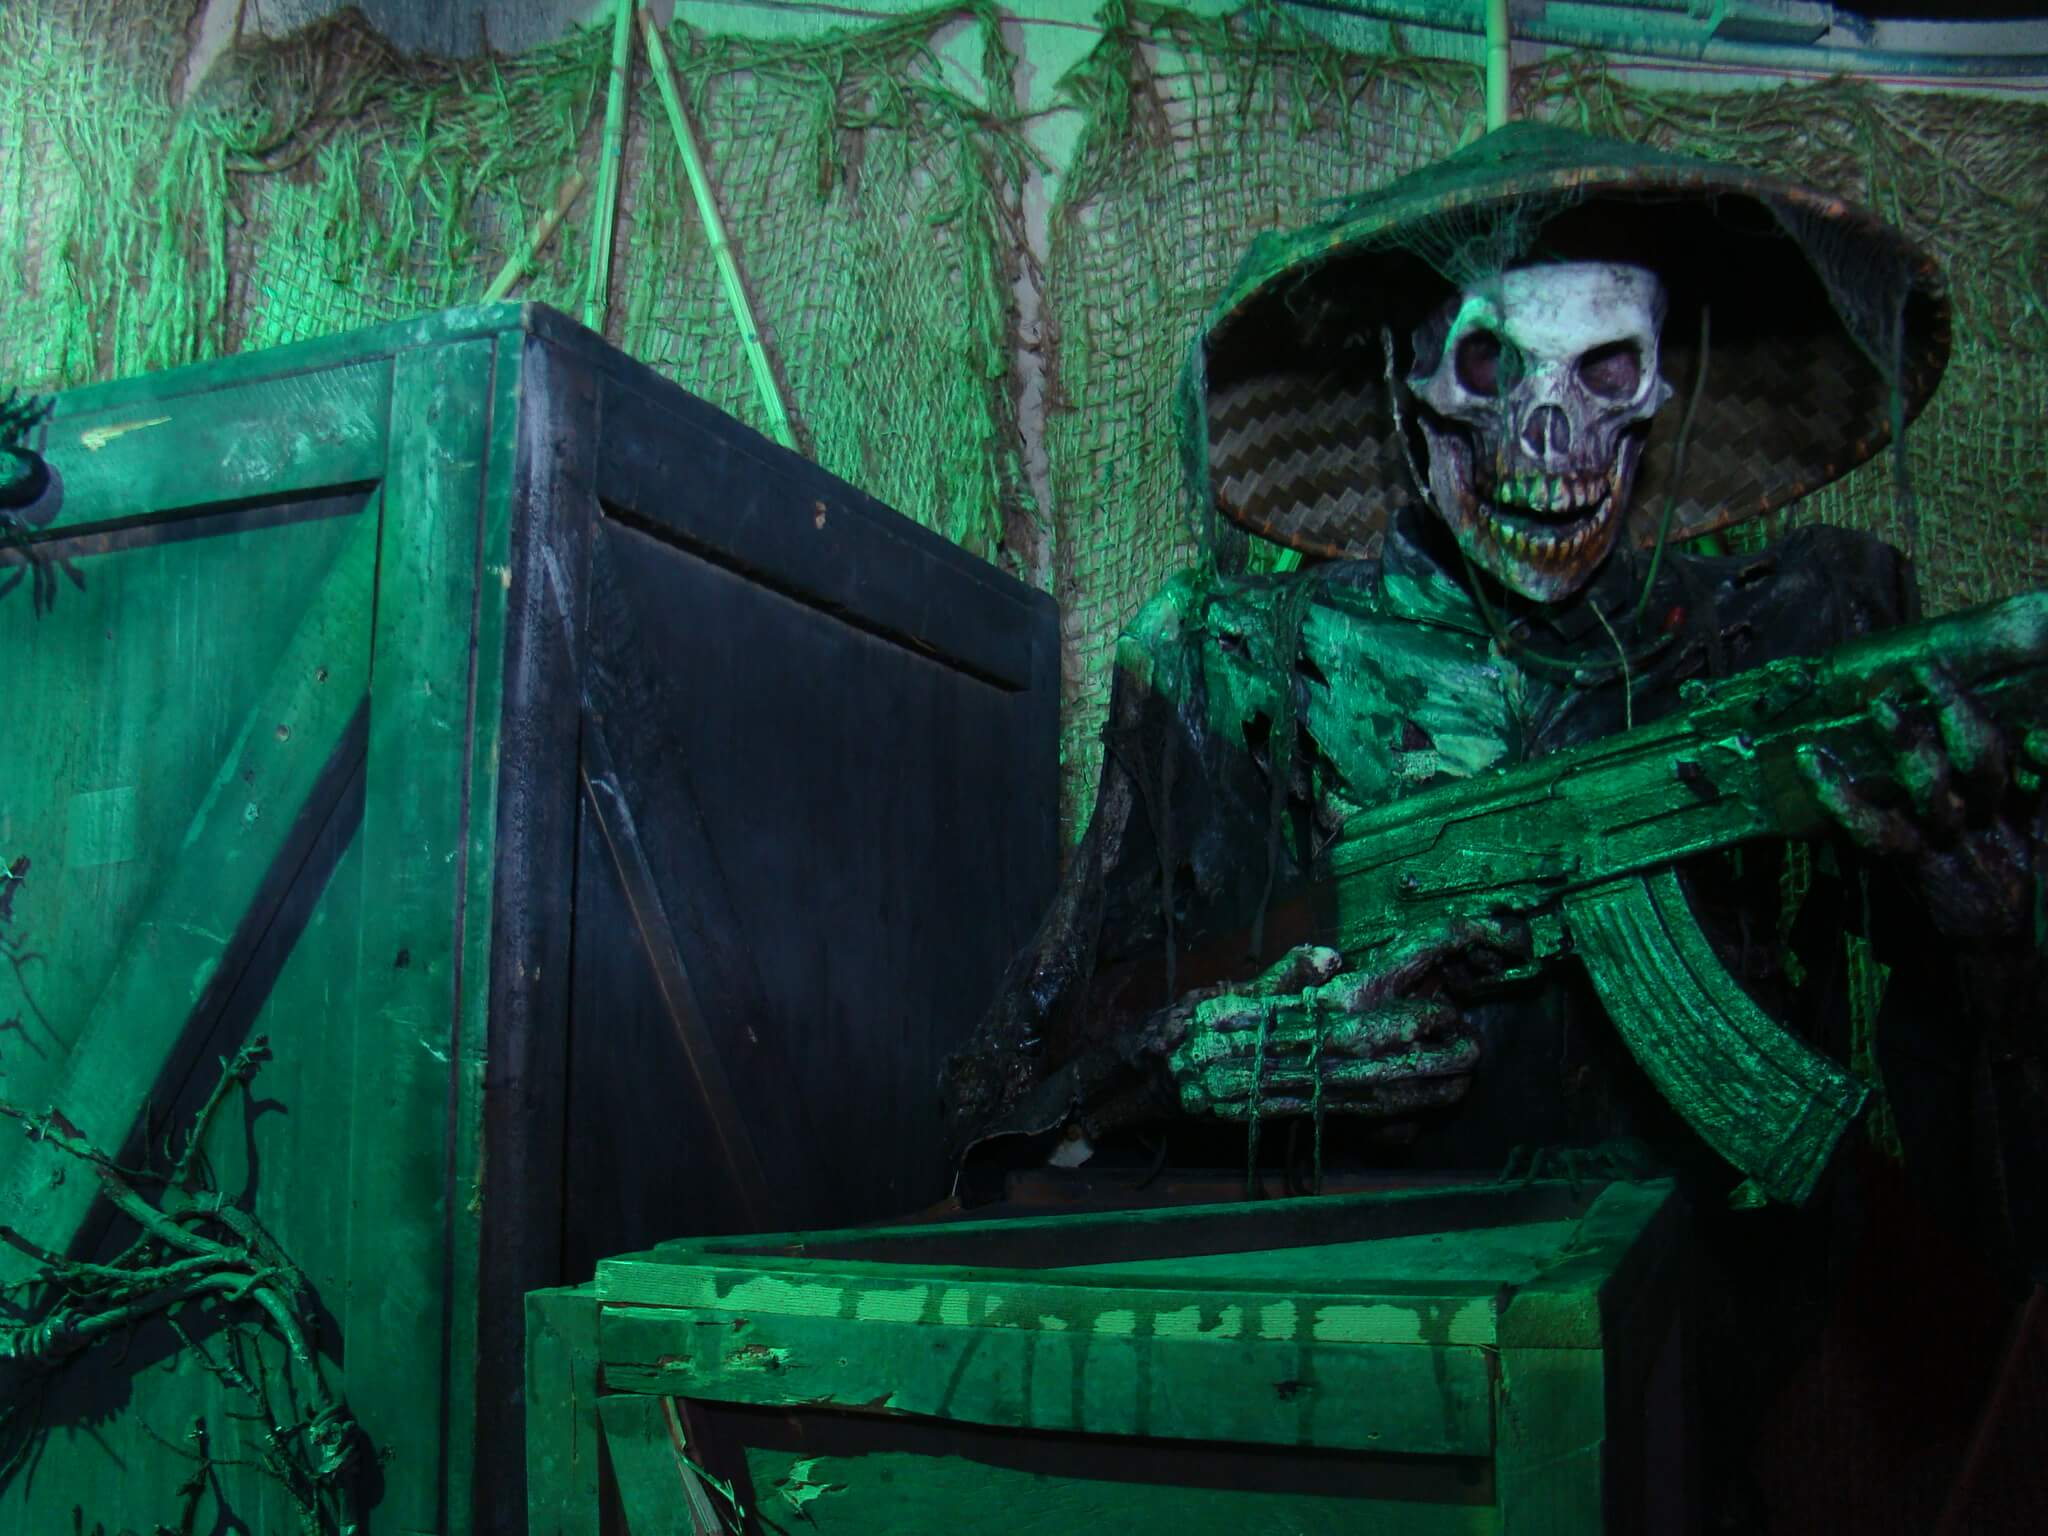 haunted house, haunted houses, halloween attractions, haunted hayrides